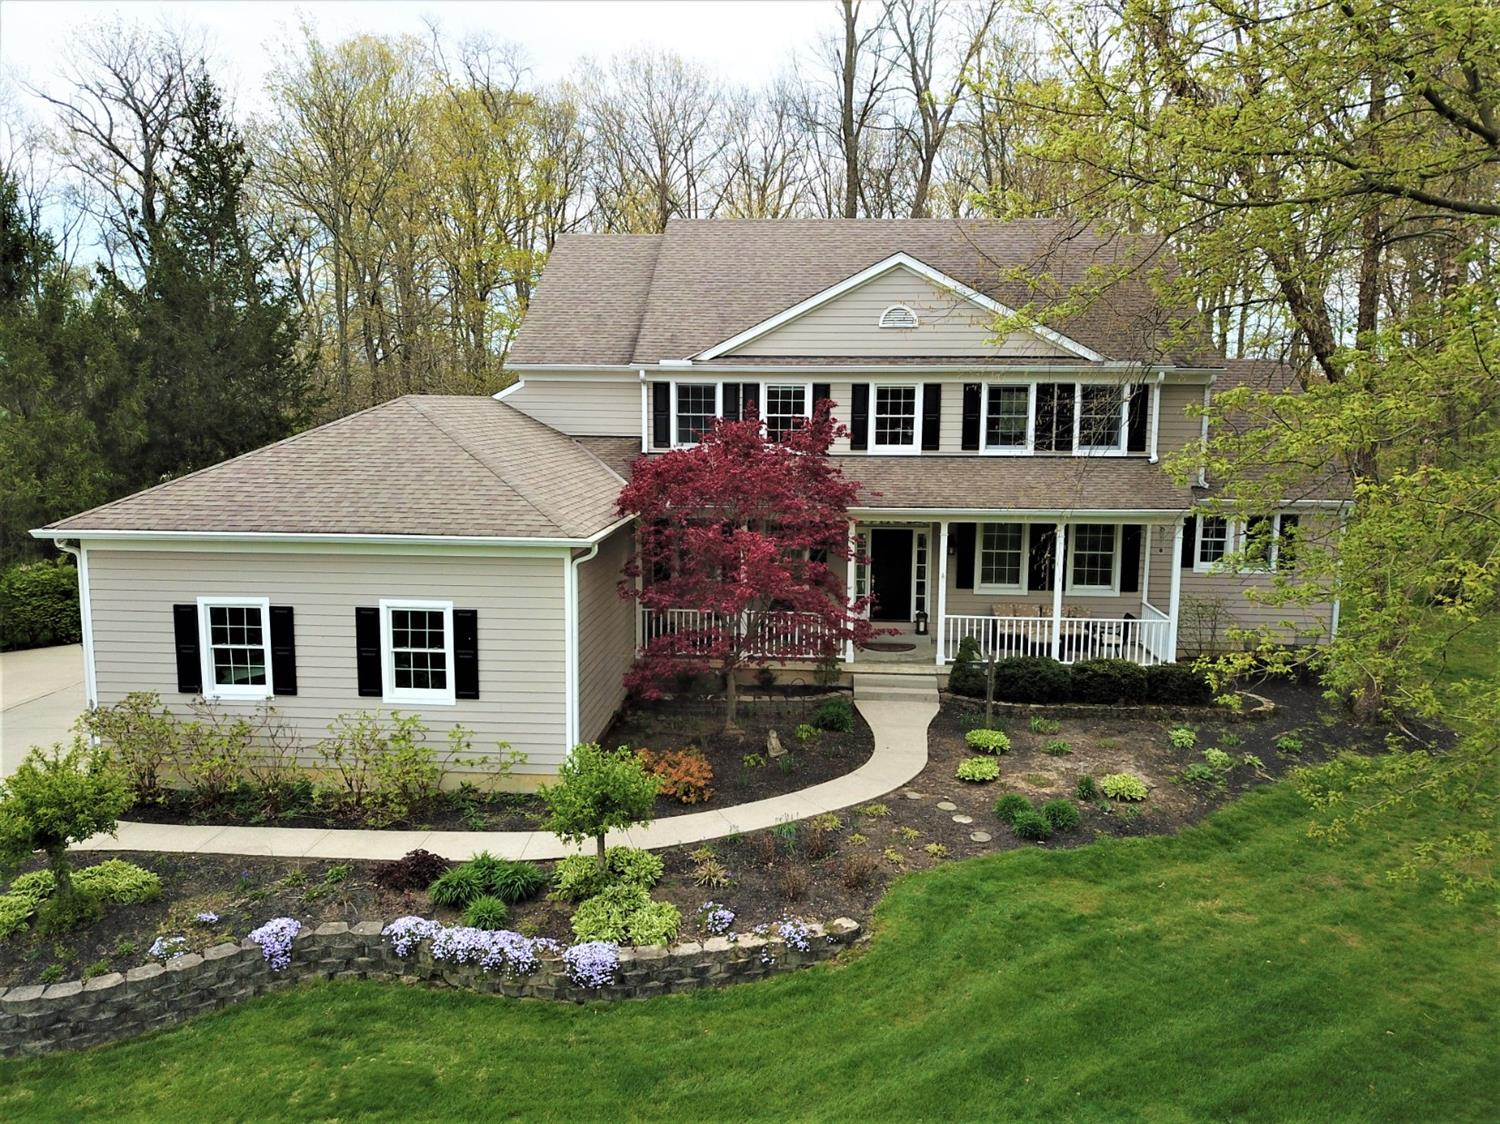 Property for sale at 1048 Orchard Run Drive, Turtle Creek Twp,  Ohio